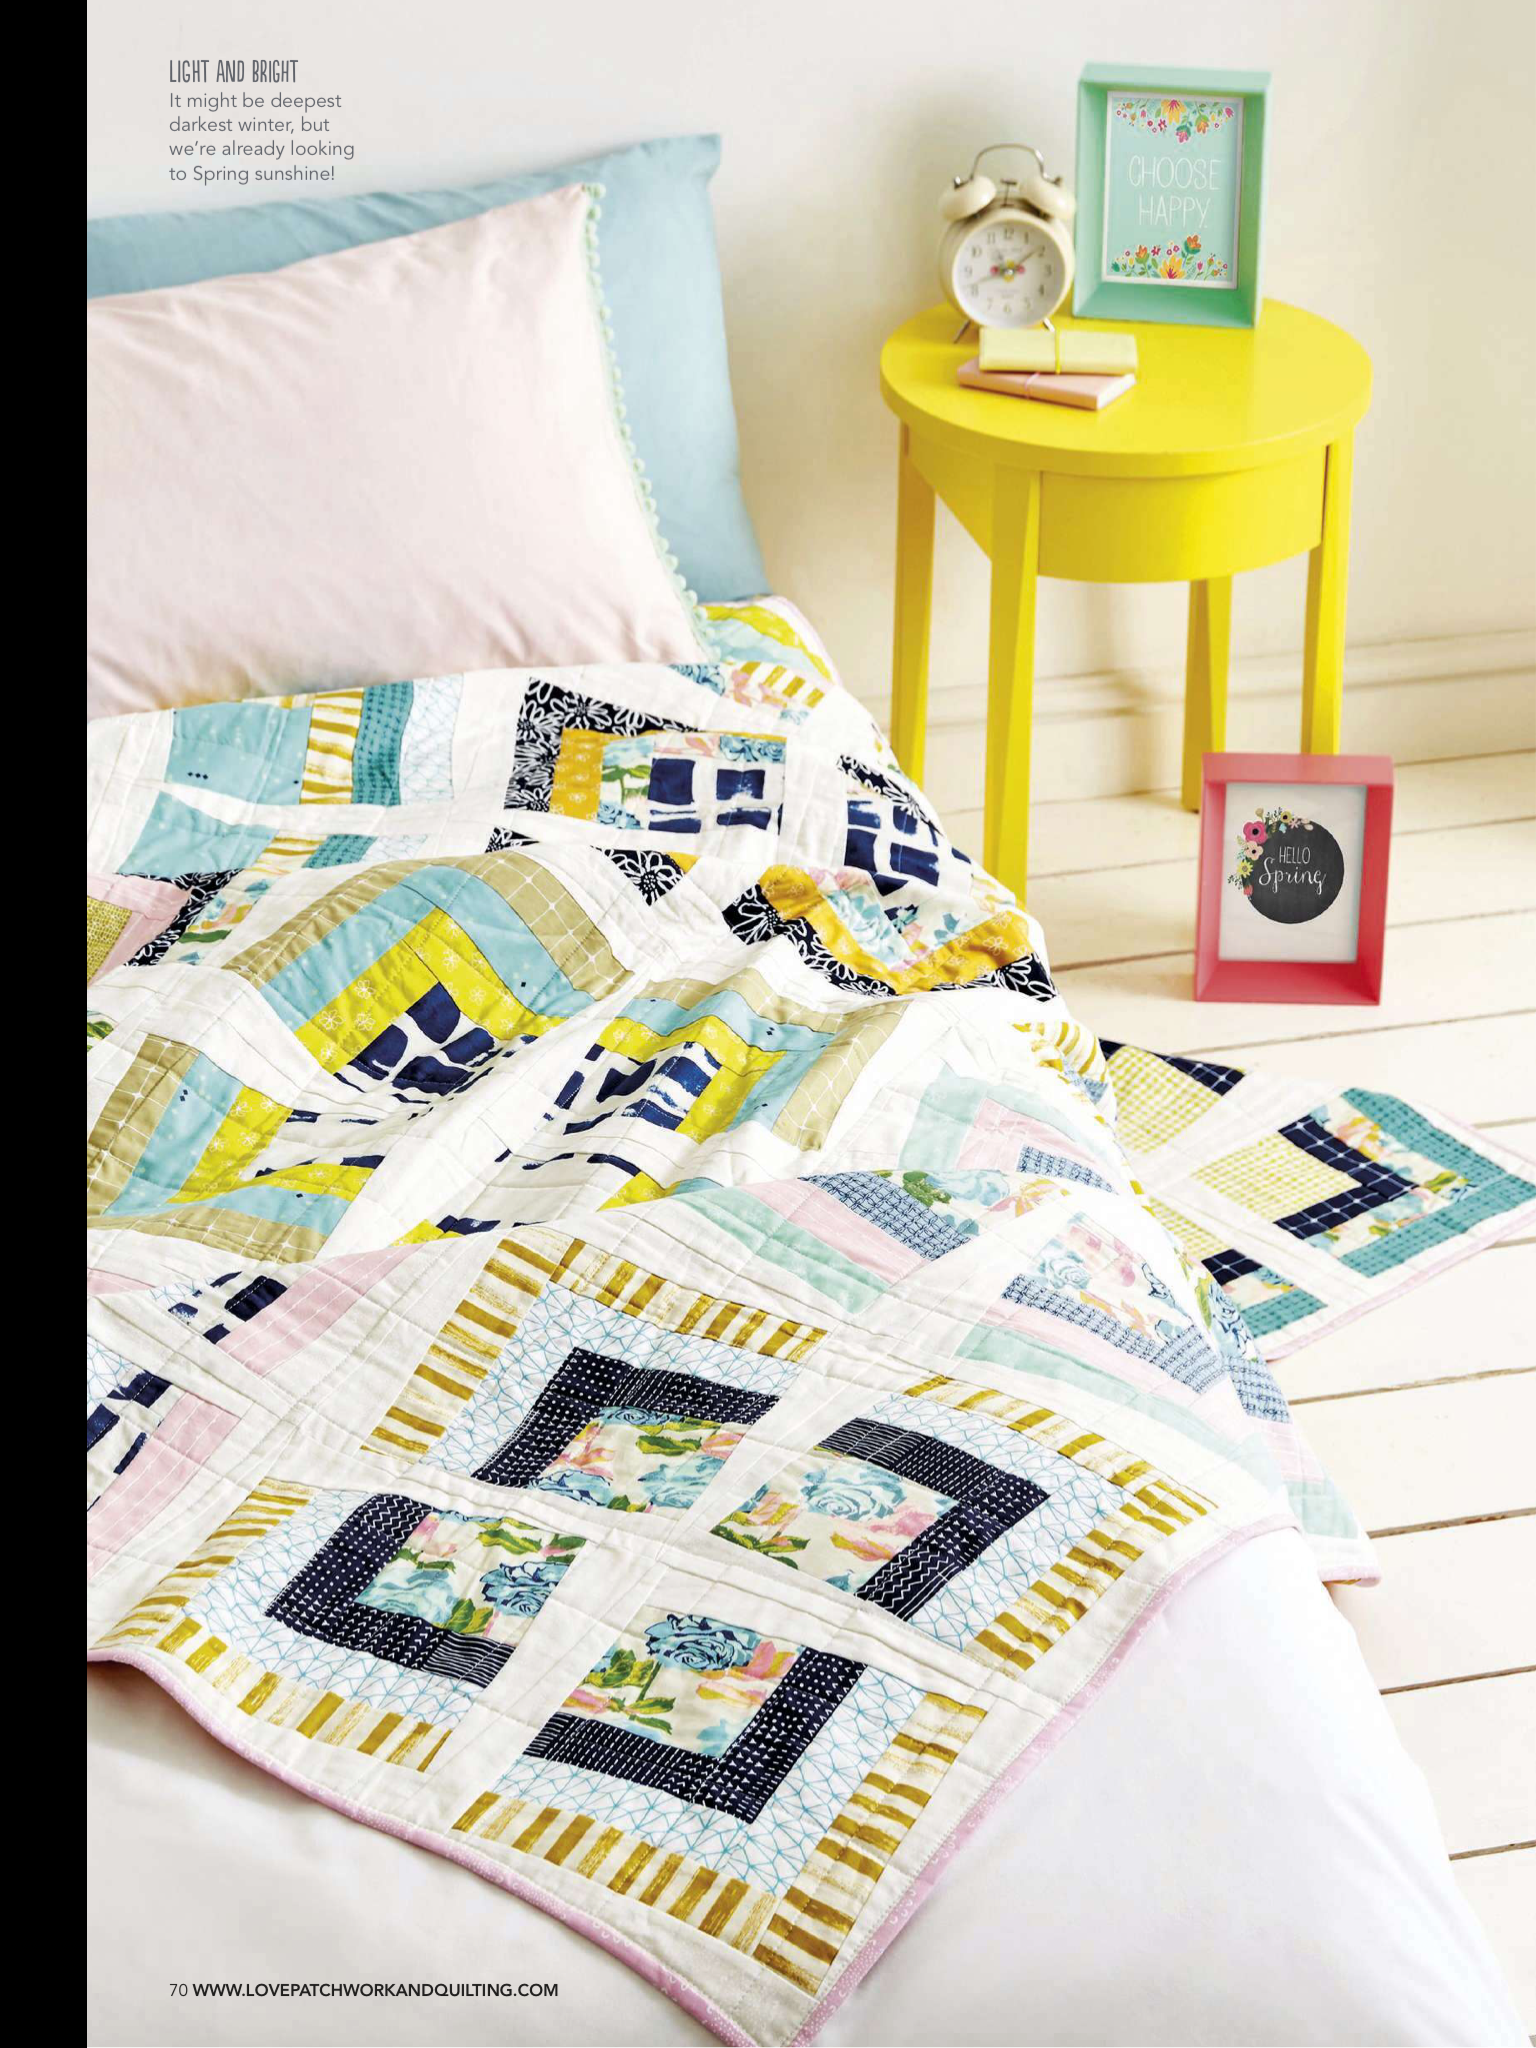 Pastel Party by Karen Lewis - Love Patchwork & Quilting, Issue 29